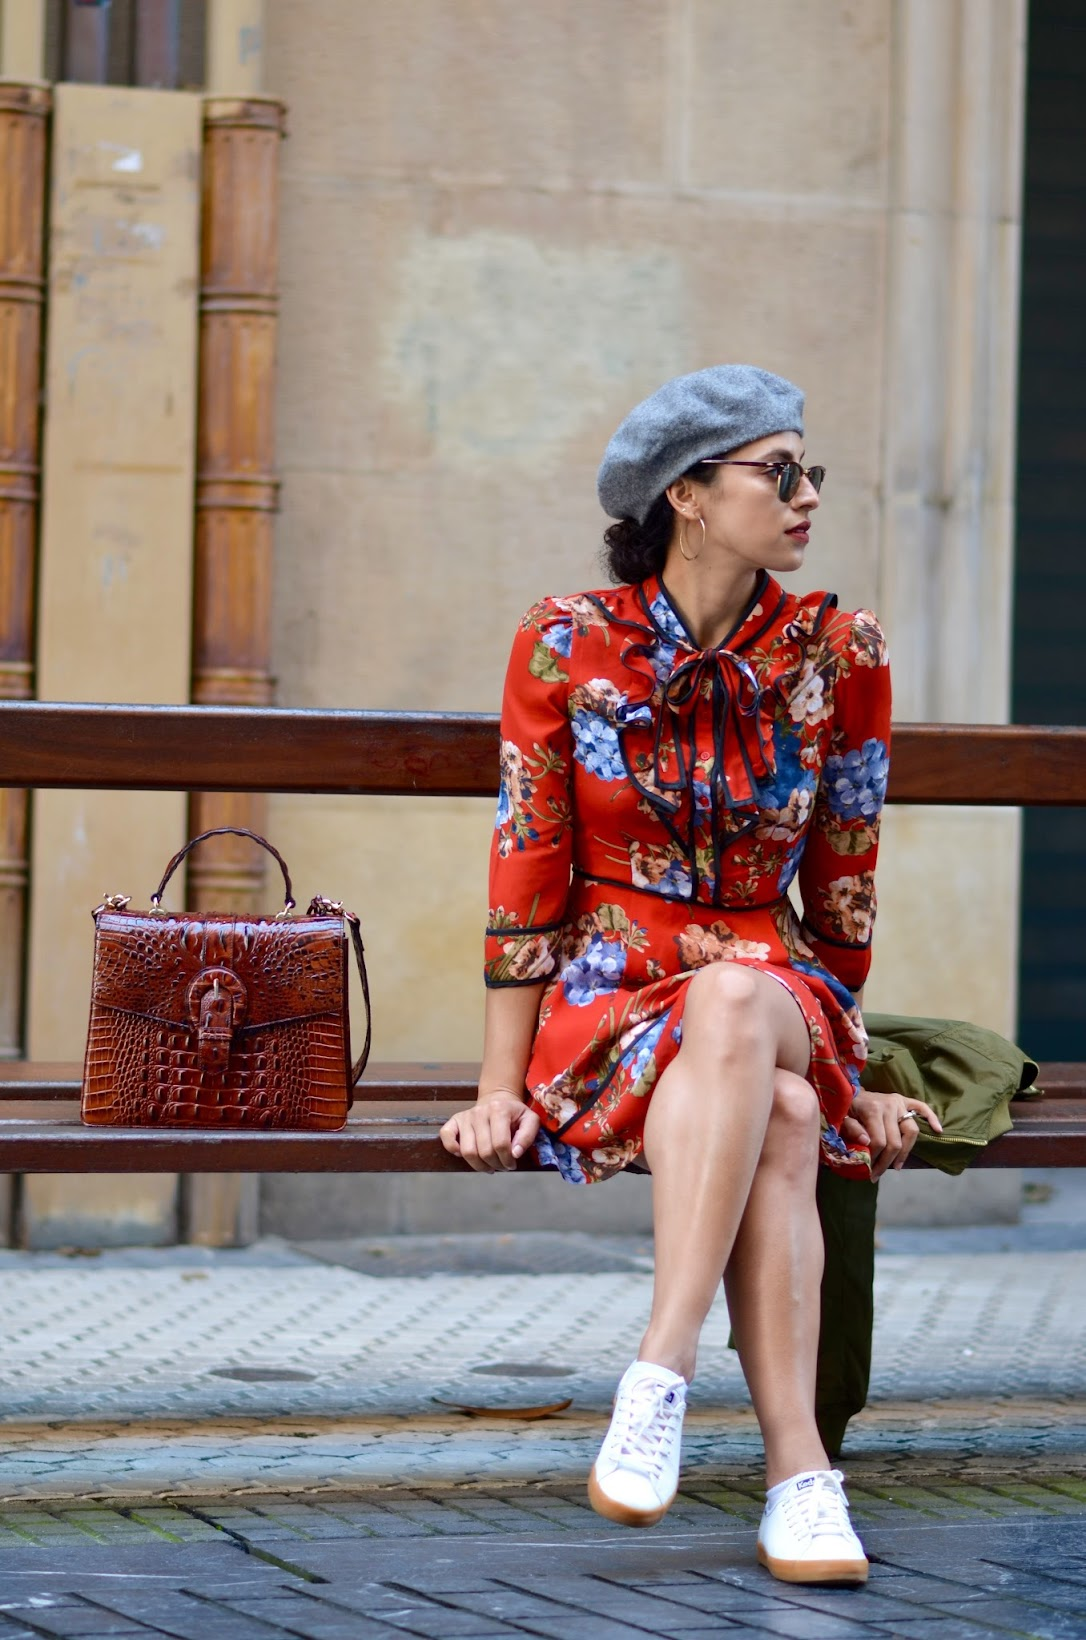 Brahmin leather satchel, grey beret, fall berry lipstick, Colour Pop, hoop earrings, red floral dres, San Sebastian, Spain